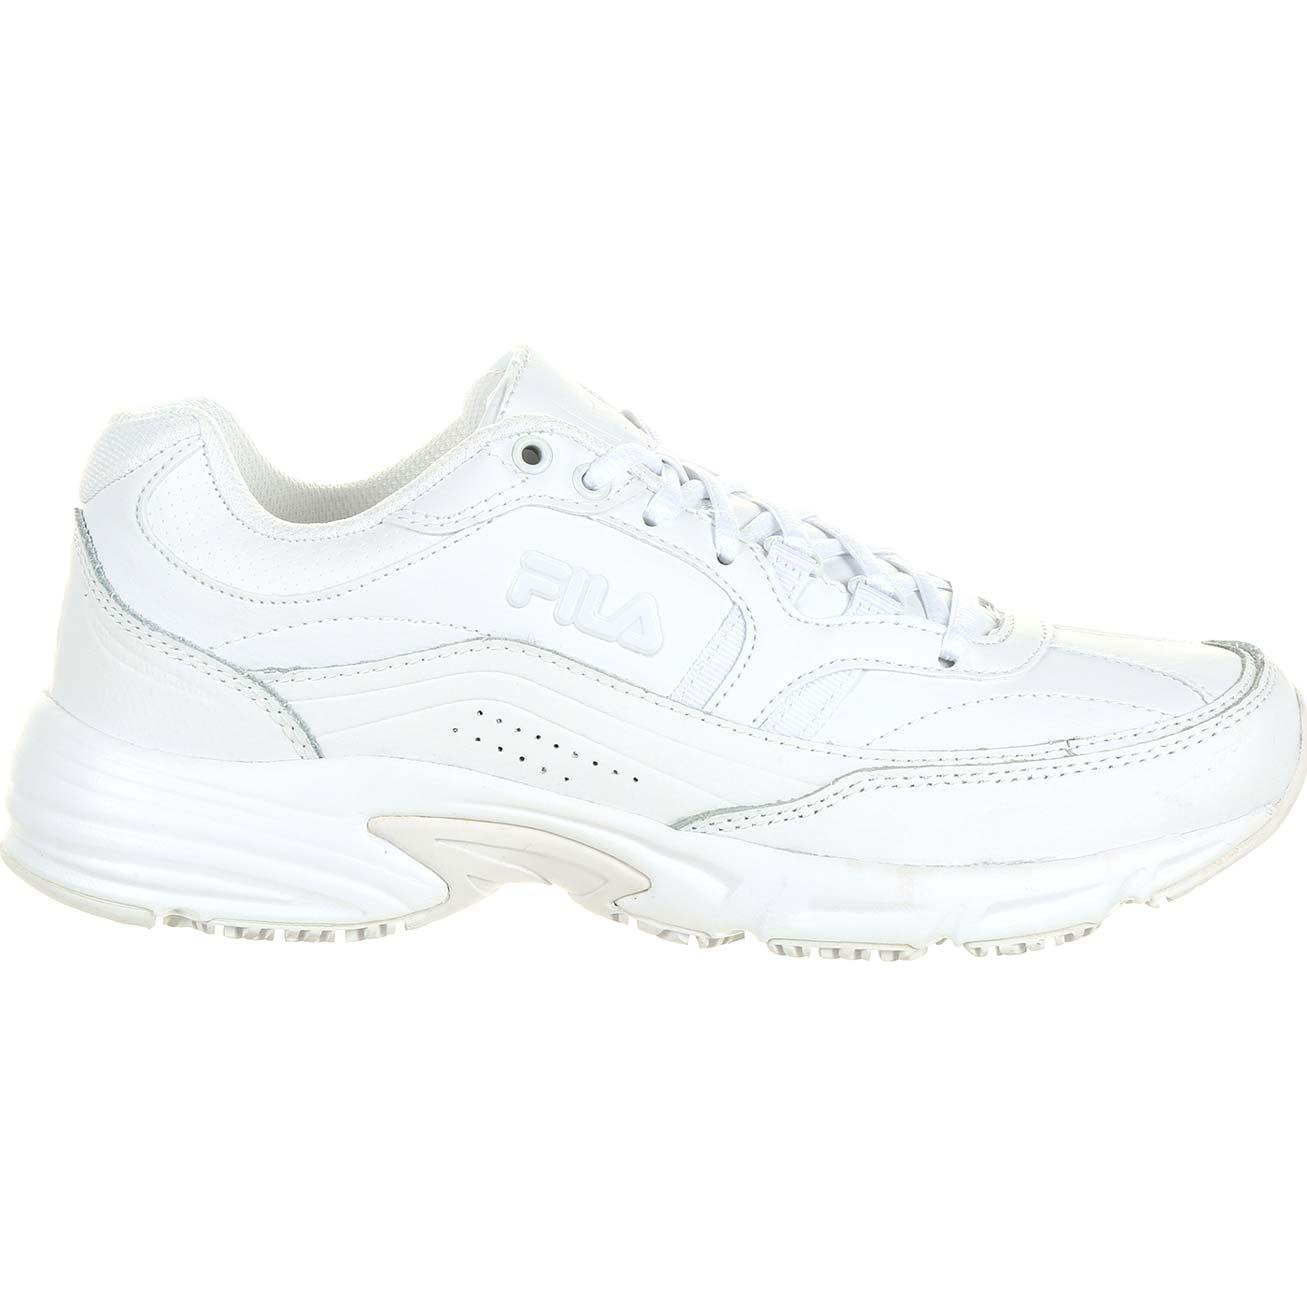 a596019eeff5 Fila Wide Memory Workshift Slip-Resistant Work Athletic Shoe